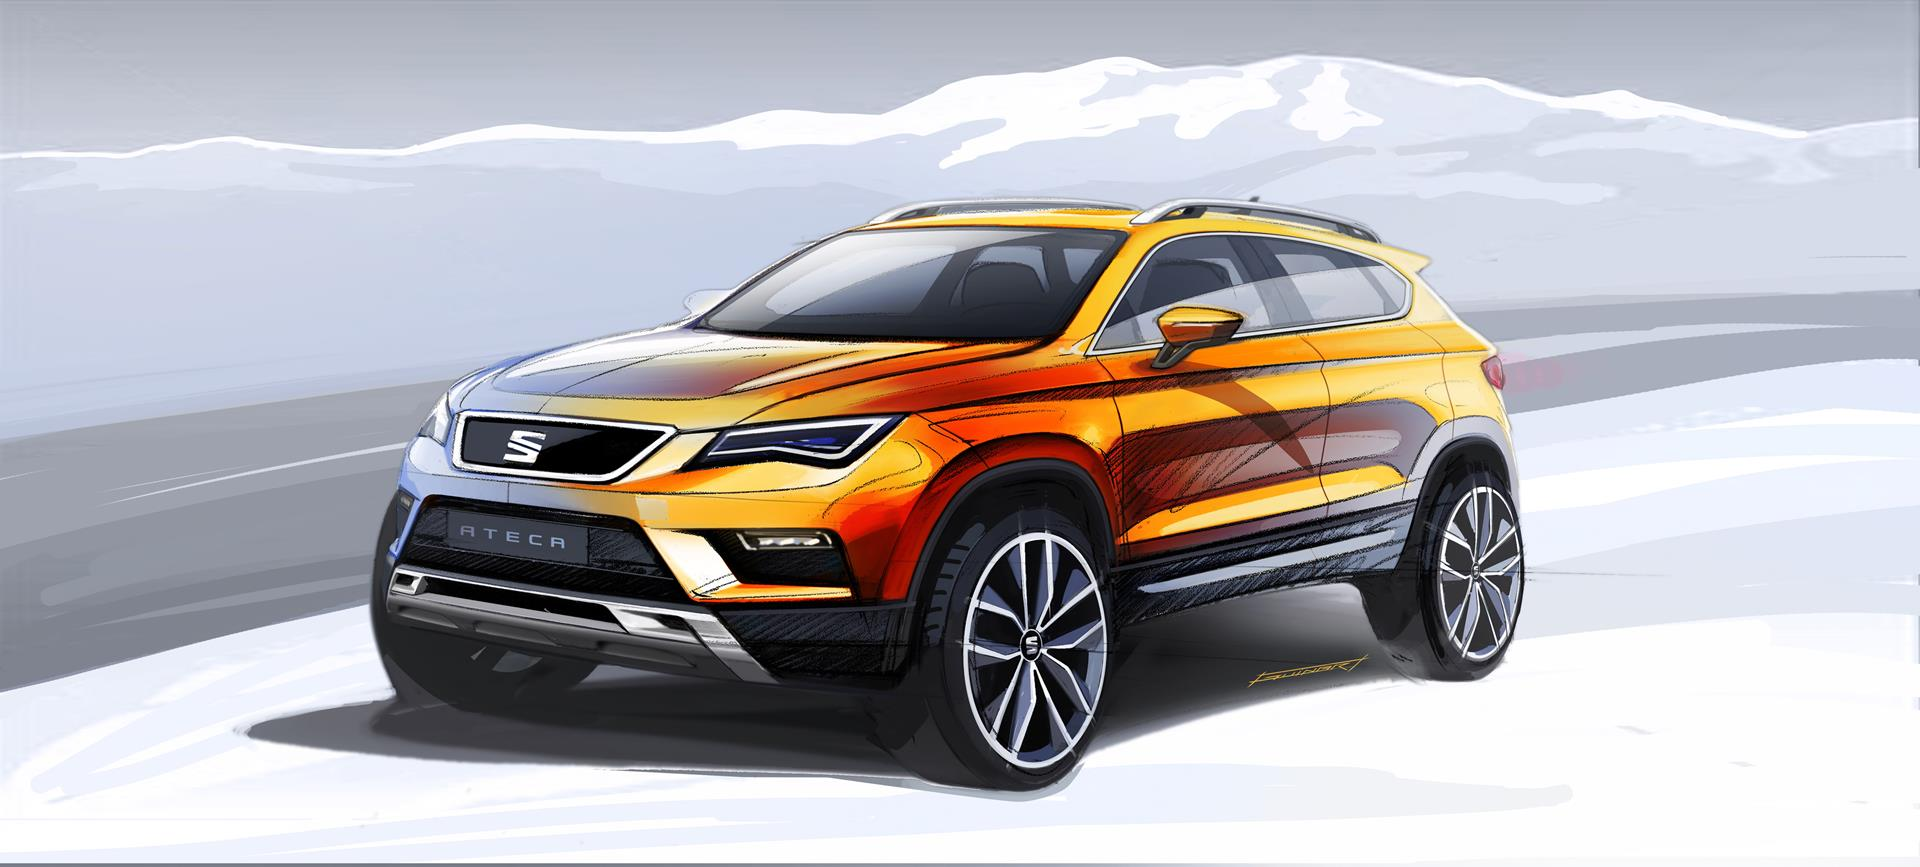 2016 Seat Ateca News And Information Conceptcarzcom